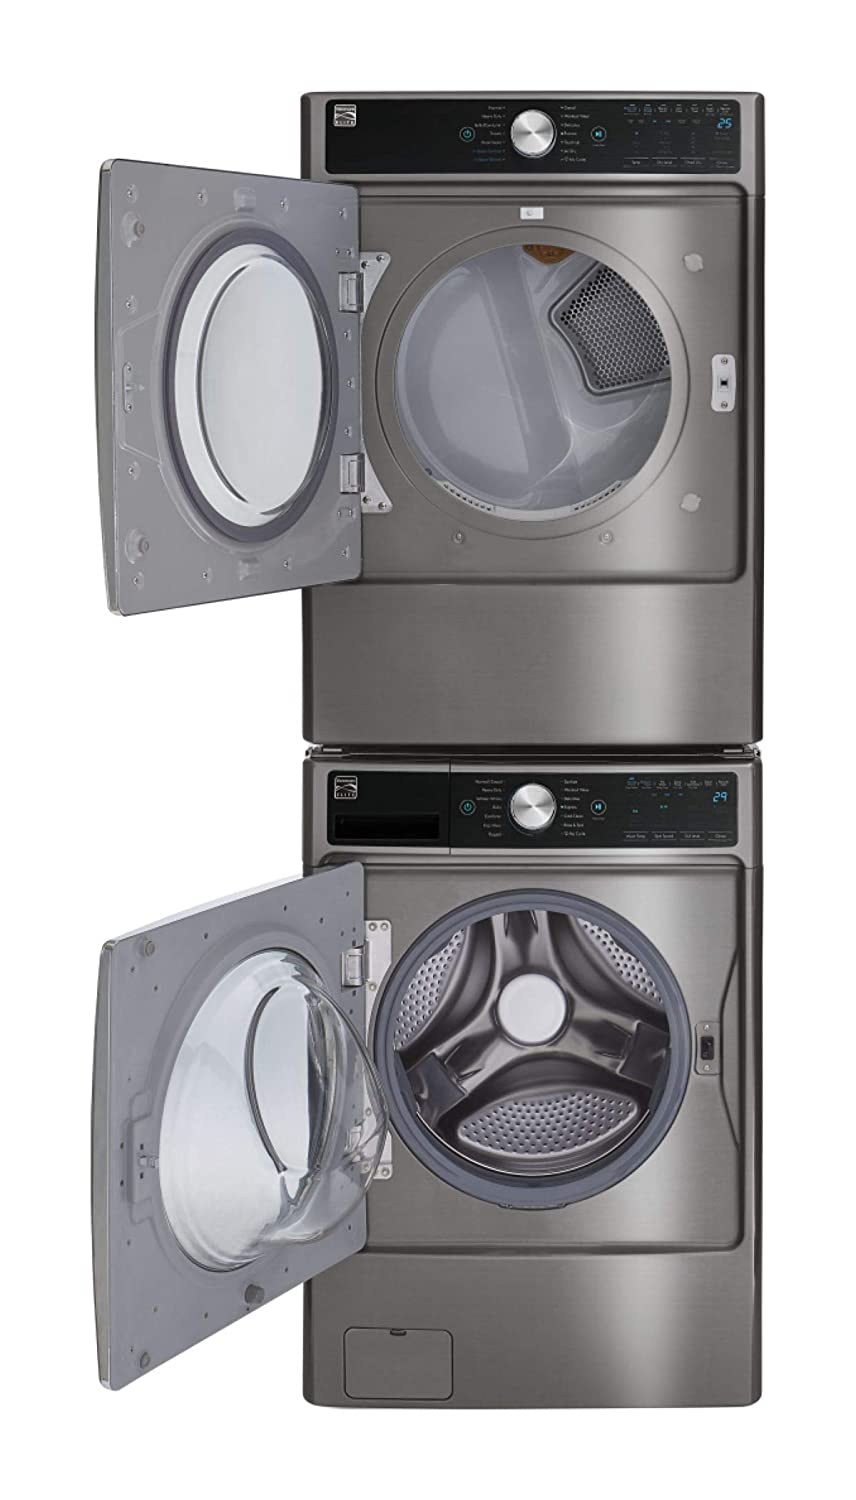 Kenmore Smart 7.4 cu. ft. Front Load Gas Washer and Dryer Bundle with Accela Steam -Metallic Silver - Compatible with Alexa.